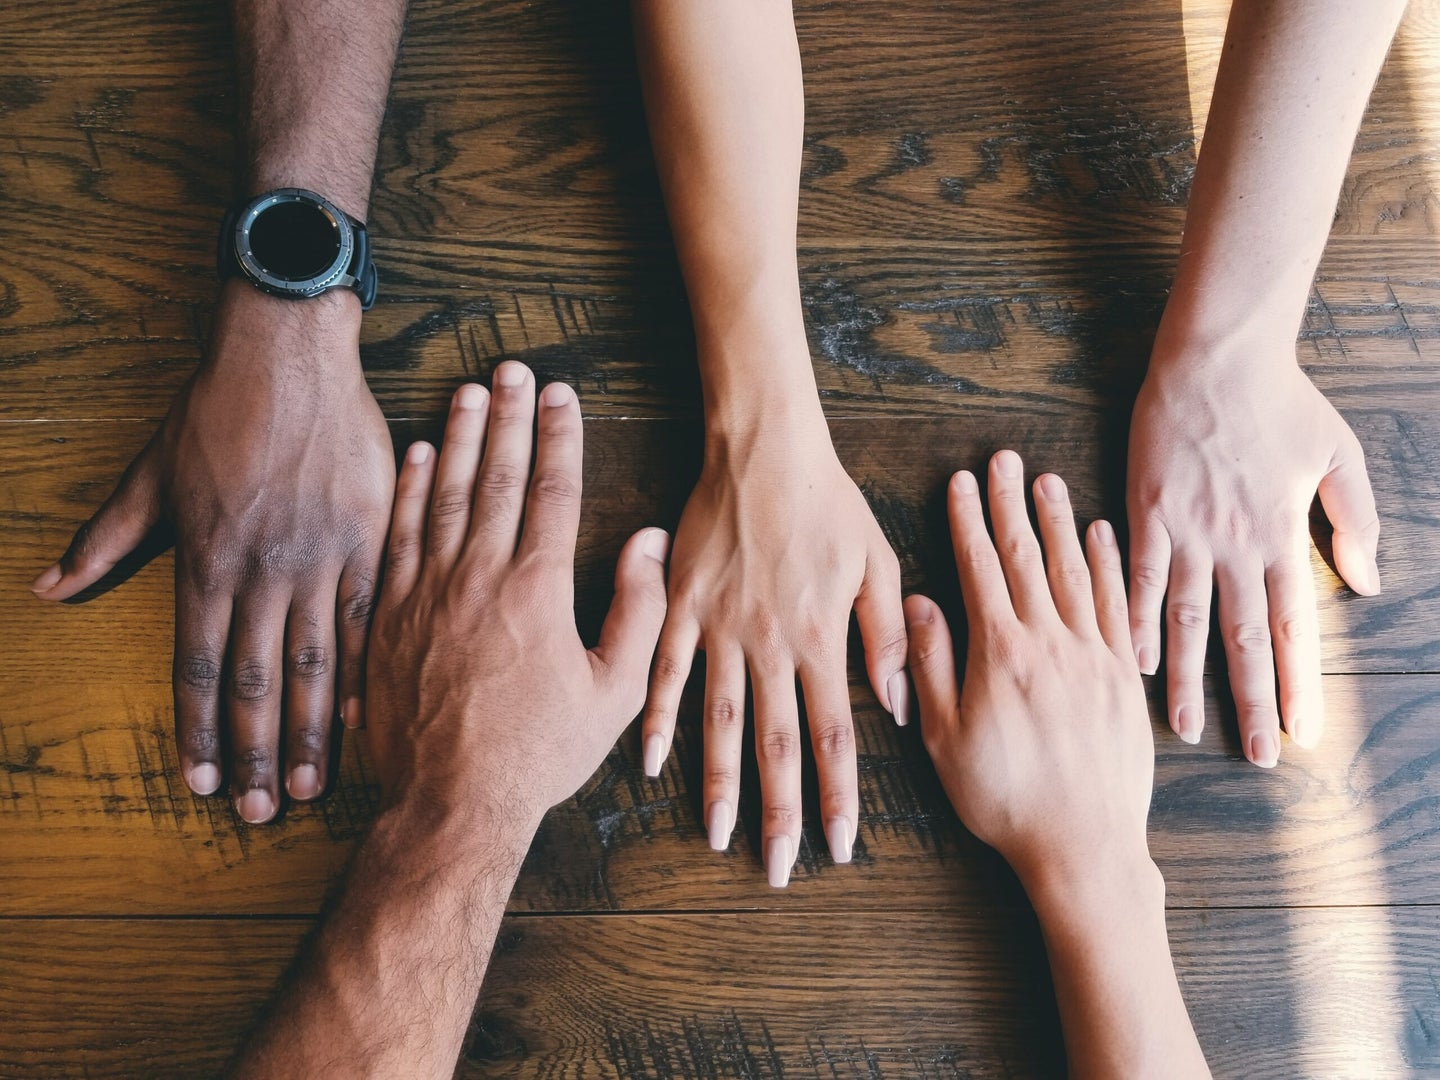 four hands with different skin colors next to each other on a table